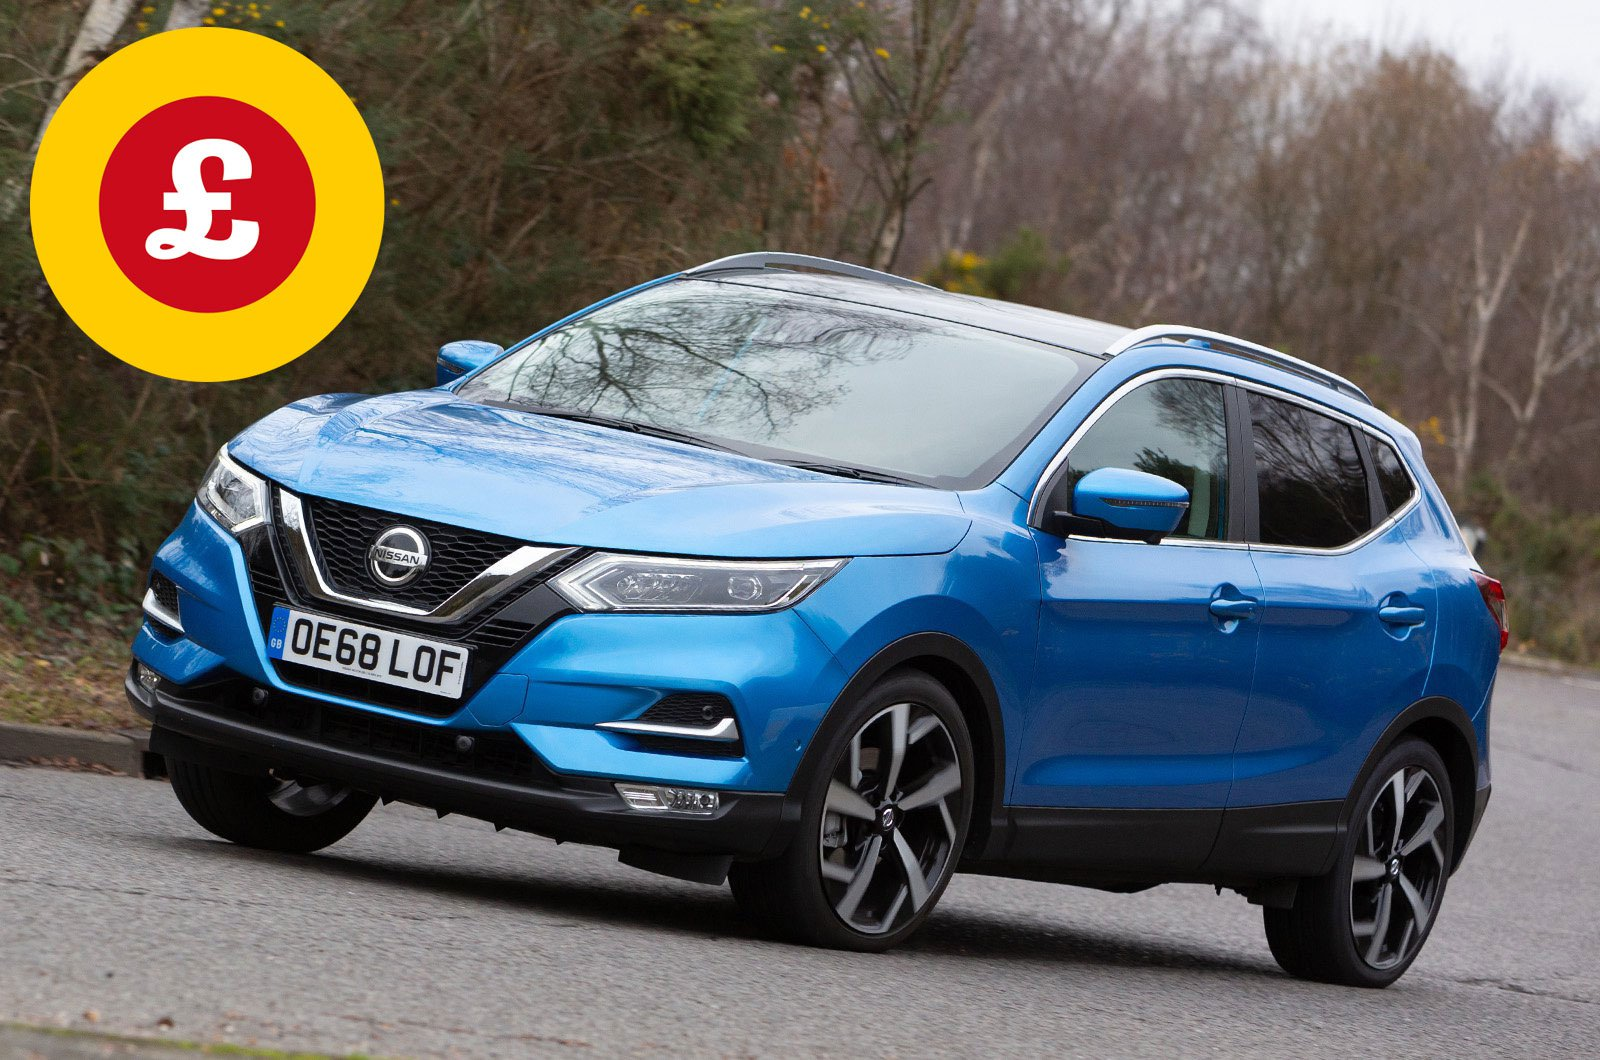 Nissan Qashqai with Target Price logo